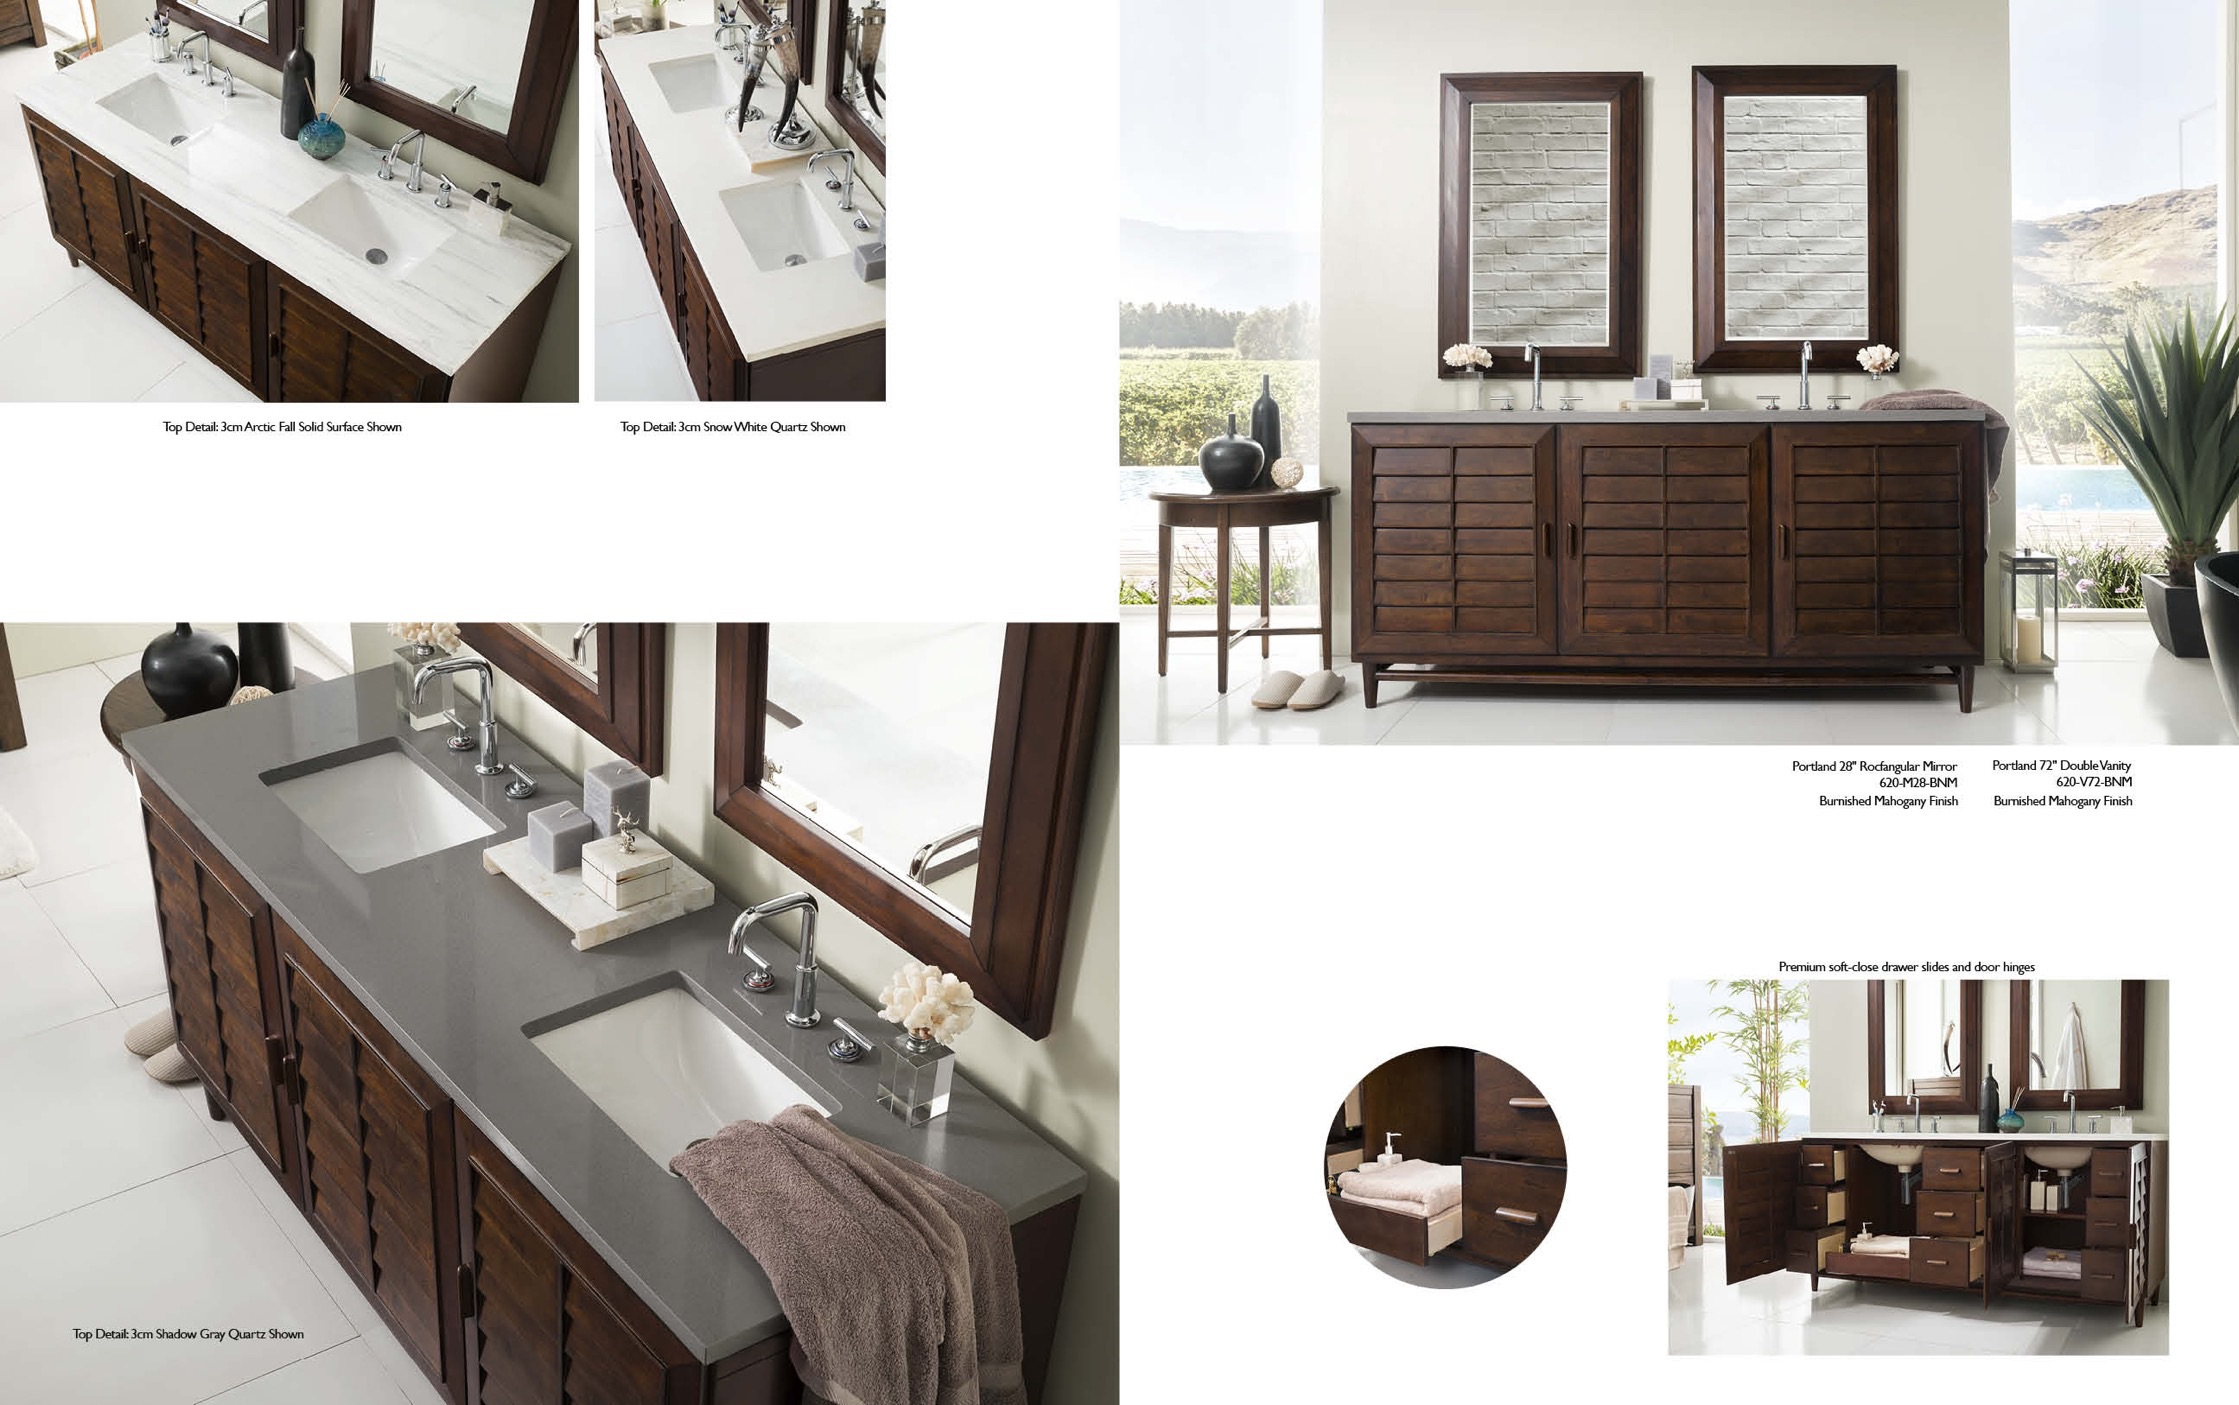 furniture design alum debuts new high end bath vanity collections portland collection by daniel finks